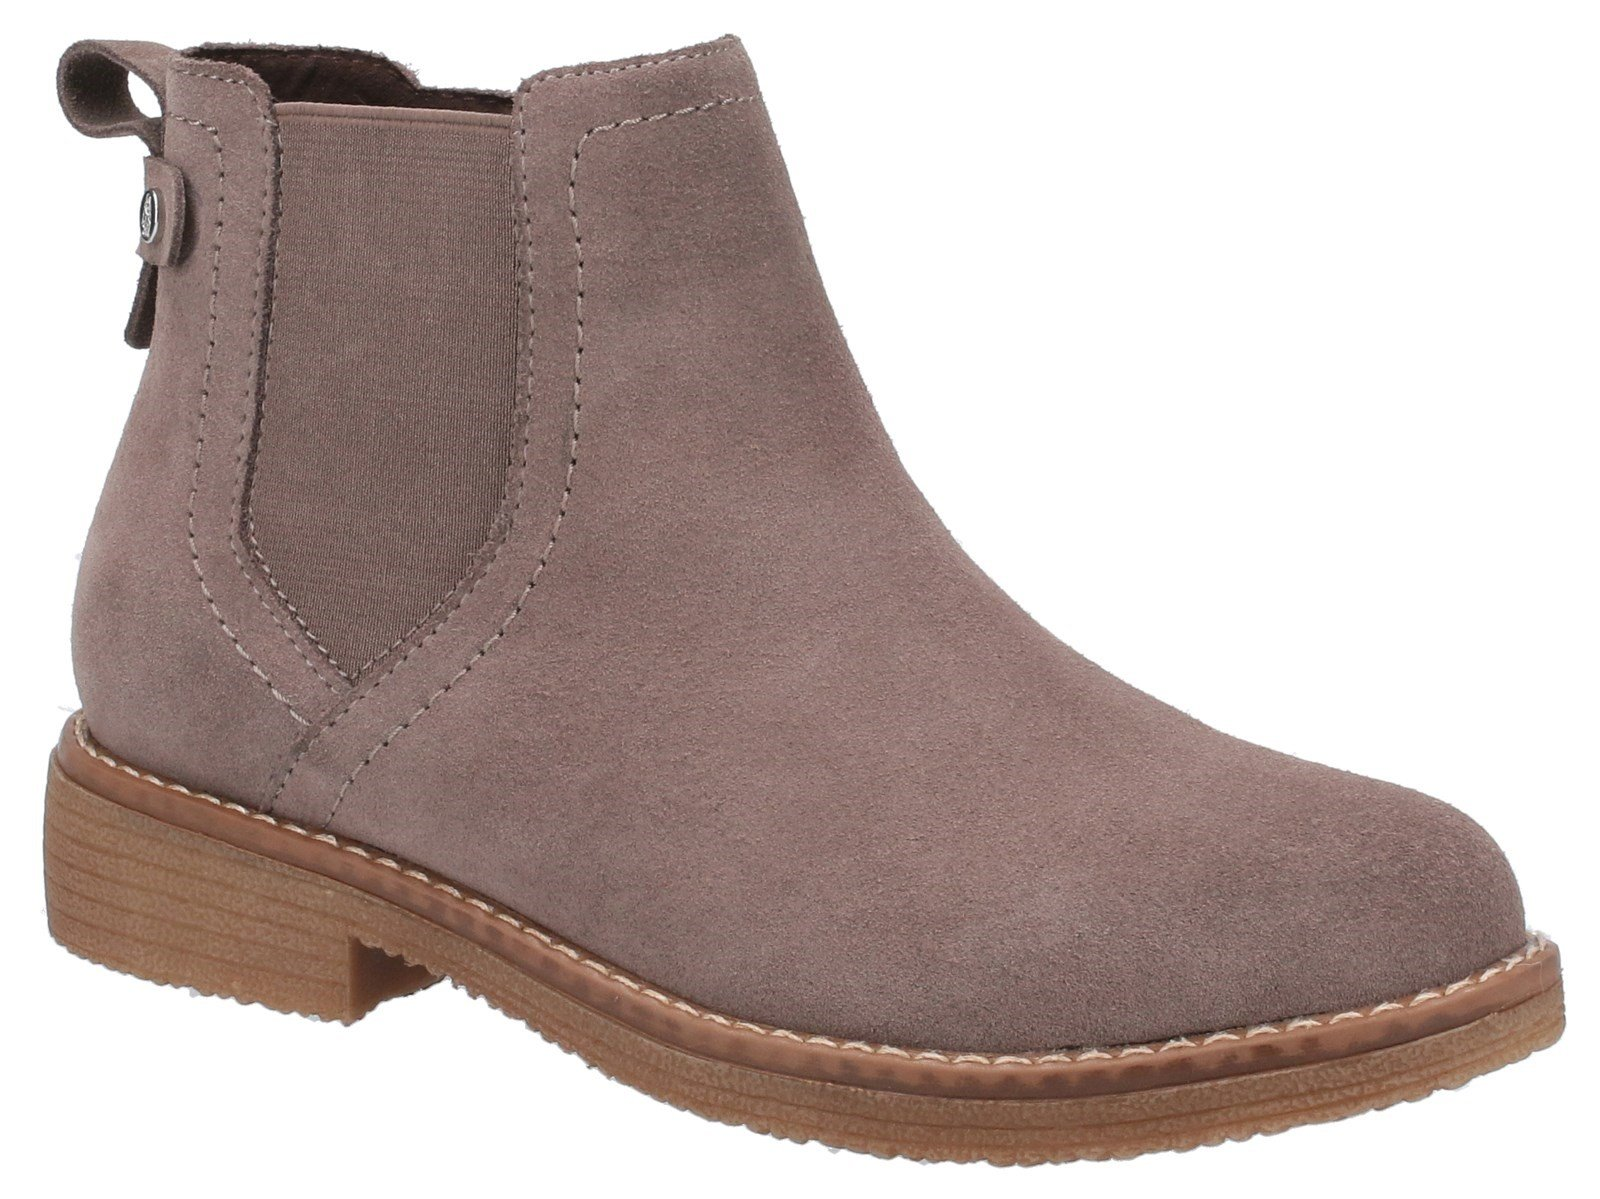 Hush Puppies Women's Maddy Ladies Ankle Boots Various Colours 31214 - Grey 3